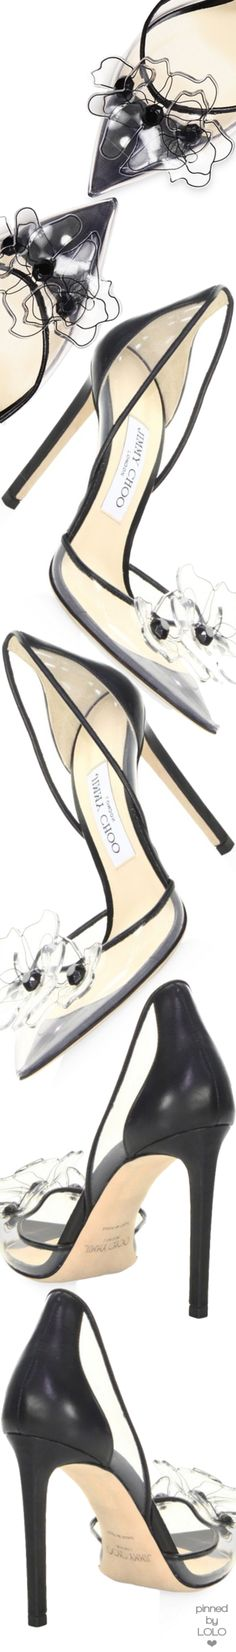 Jimmy Choo Levina Transparent Pumps #jimmychoopumps